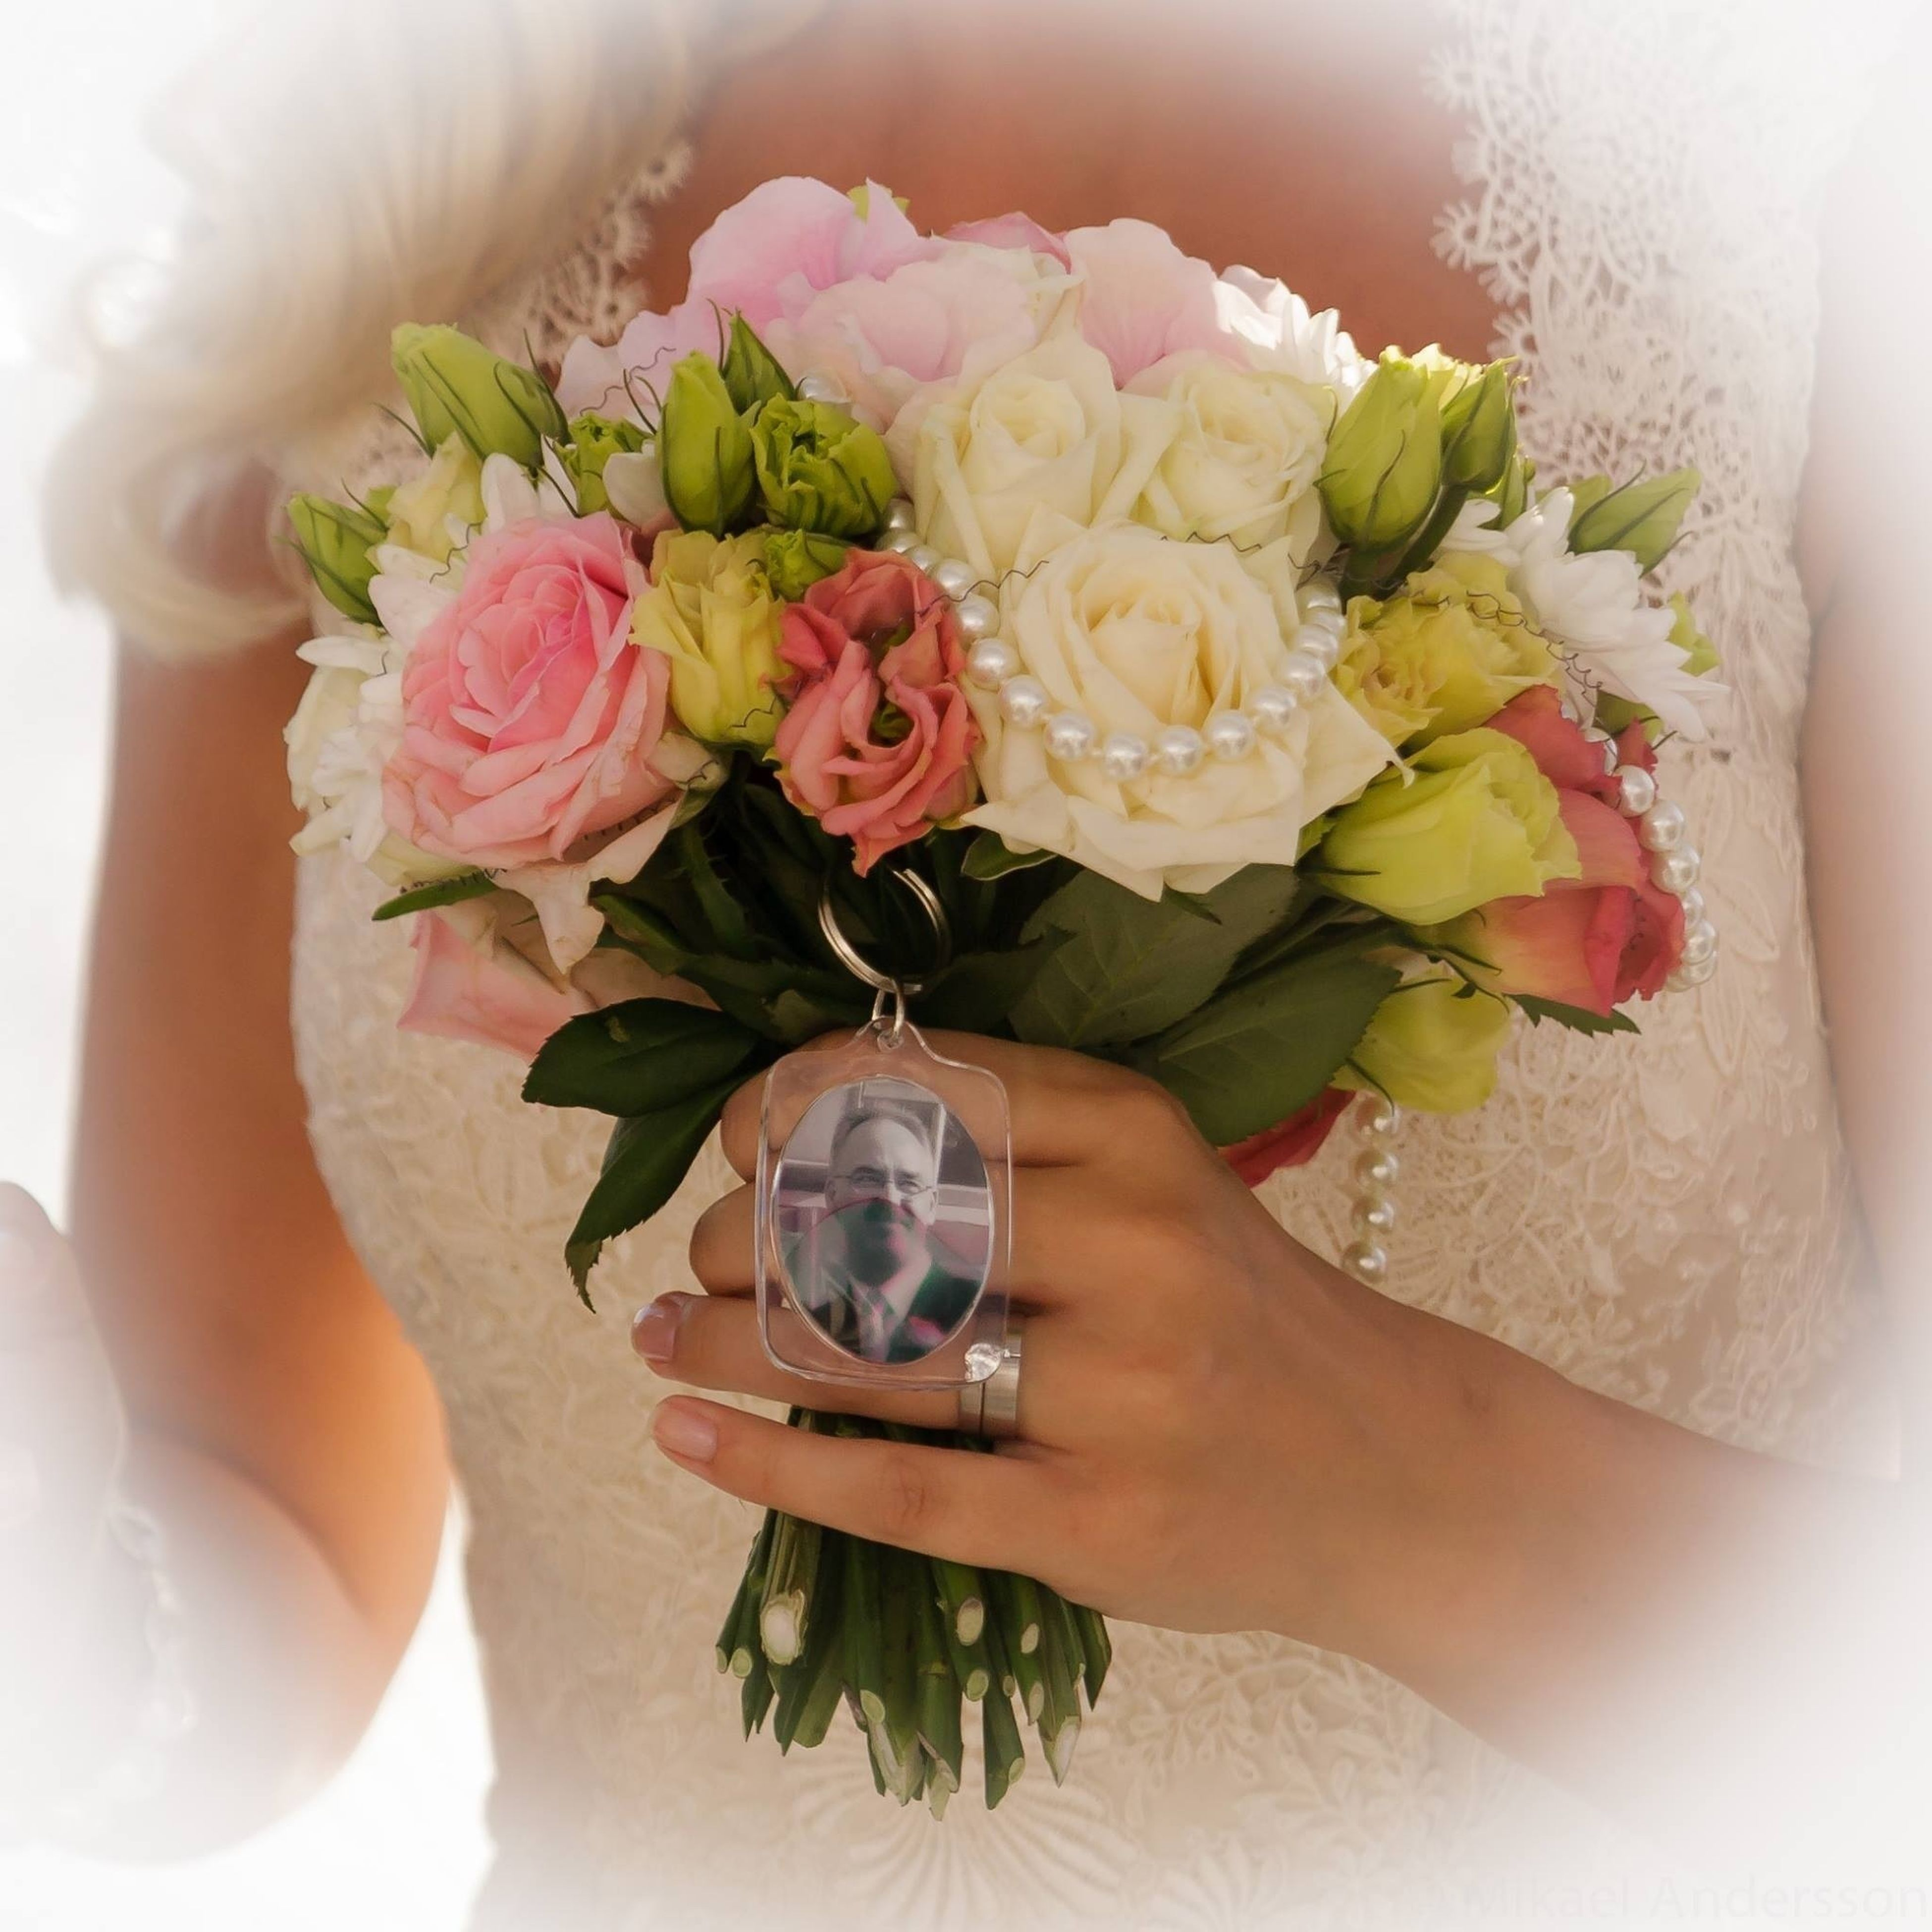 flower, indoors, freshness, holding, vase, person, bouquet, petal, lifestyles, fragility, rose - flower, bunch of flowers, flower head, leisure activity, home interior, close-up